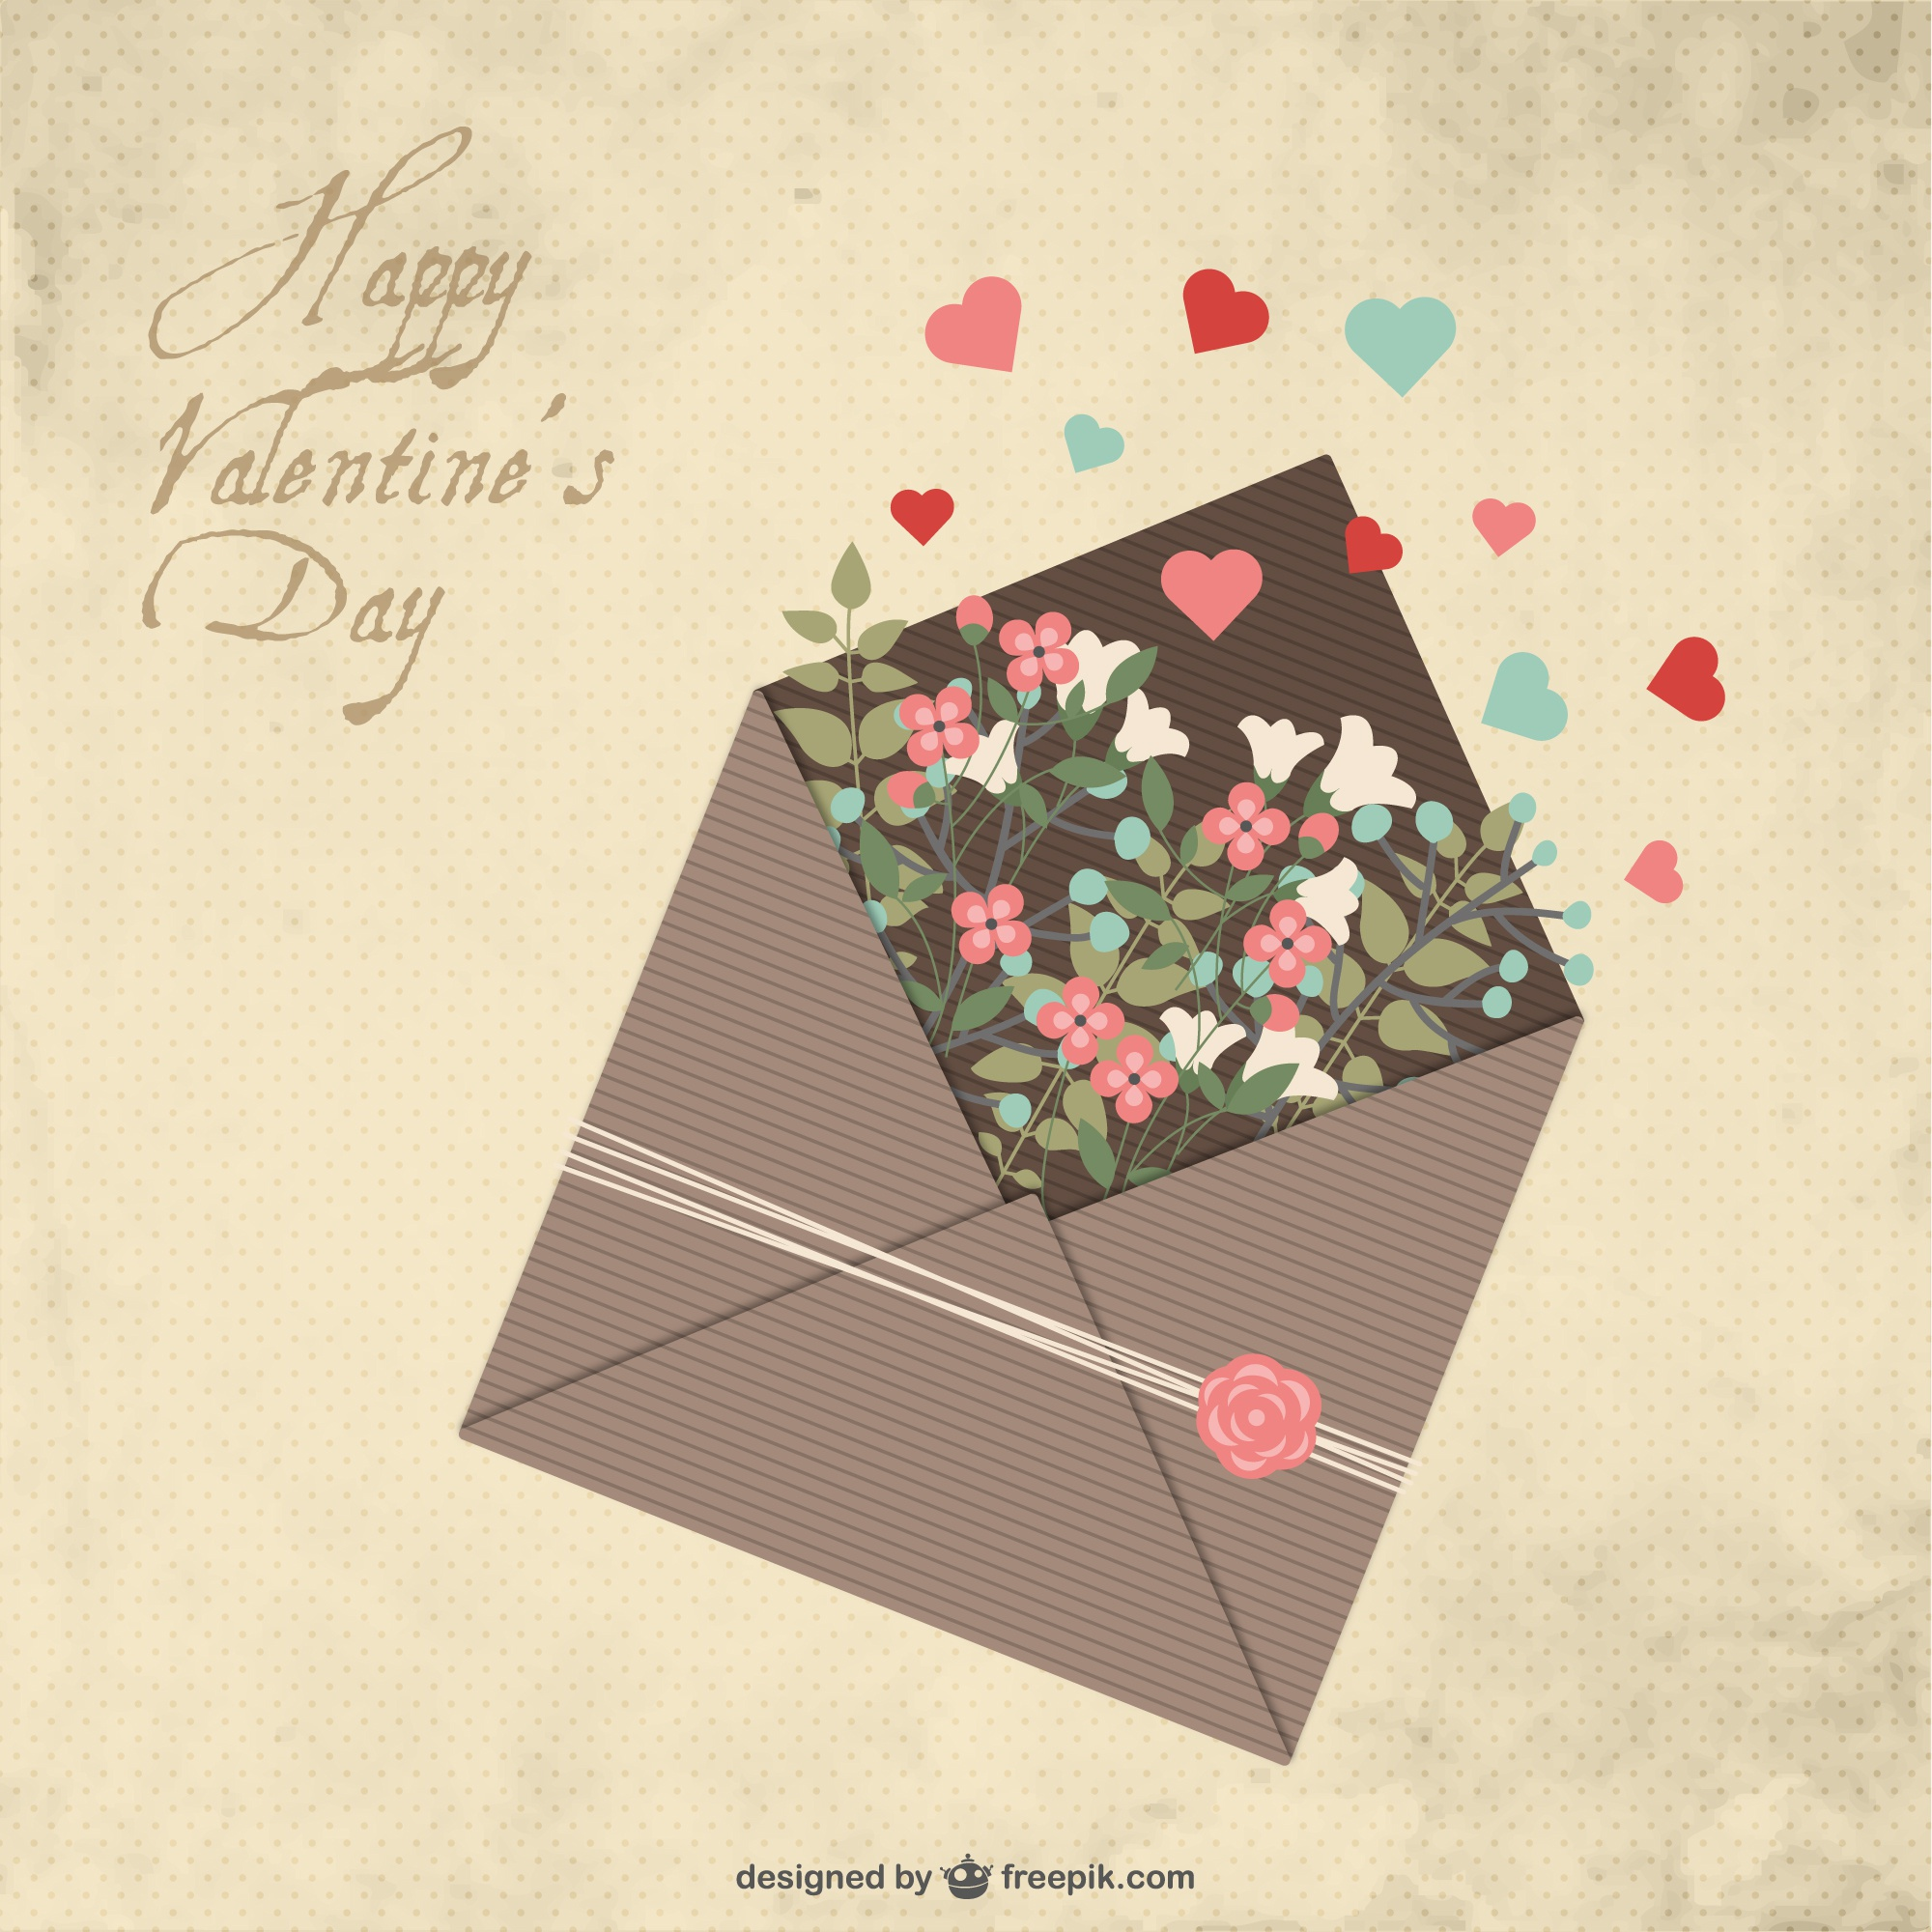 Valentine's Day letter